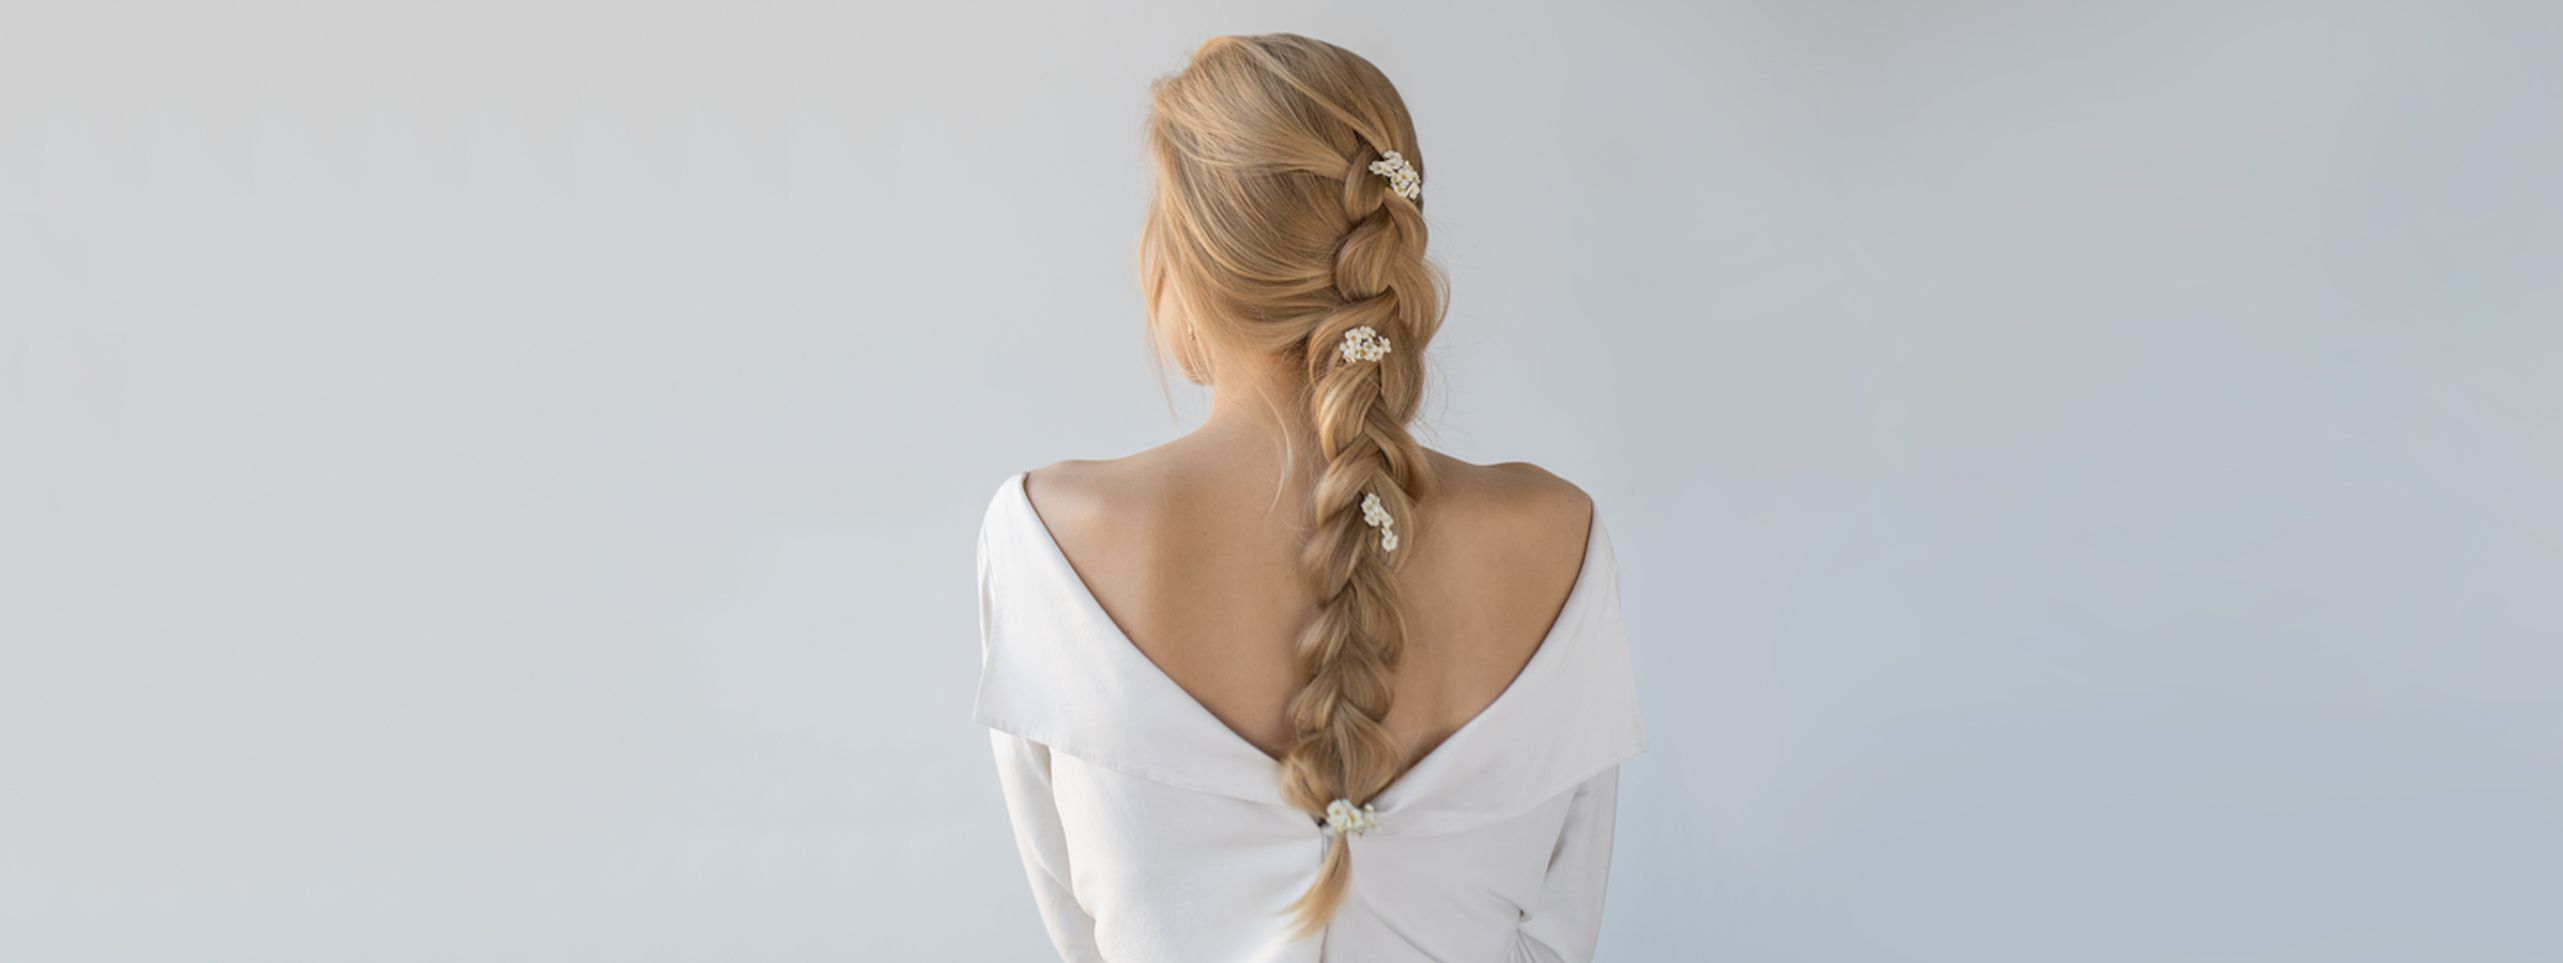 Back view of long braided hair